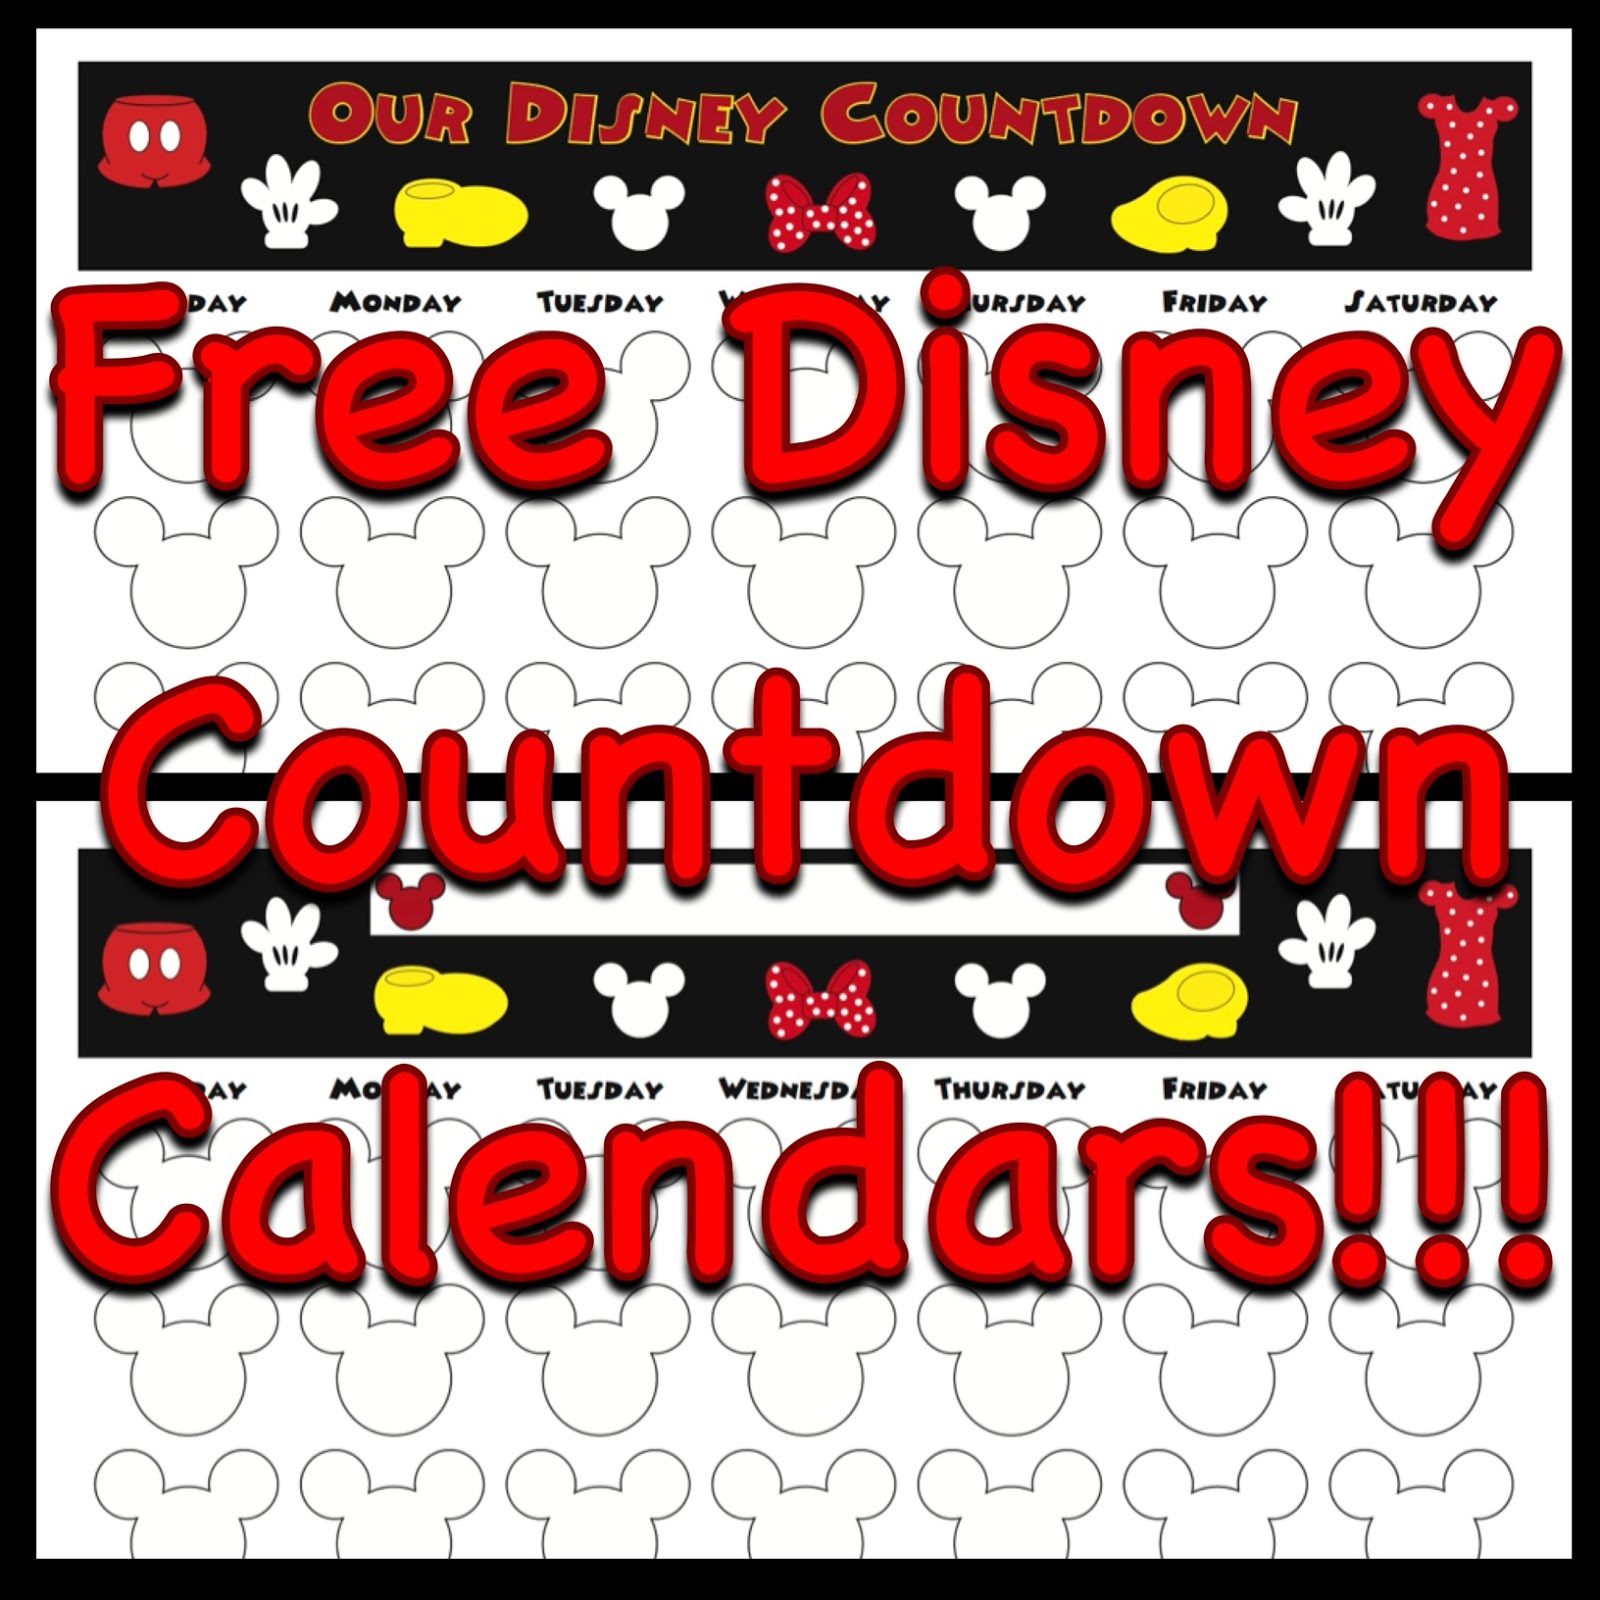 My Disney Life: Countdown Calendars pertaining to Disney Countdown Calendar Printable